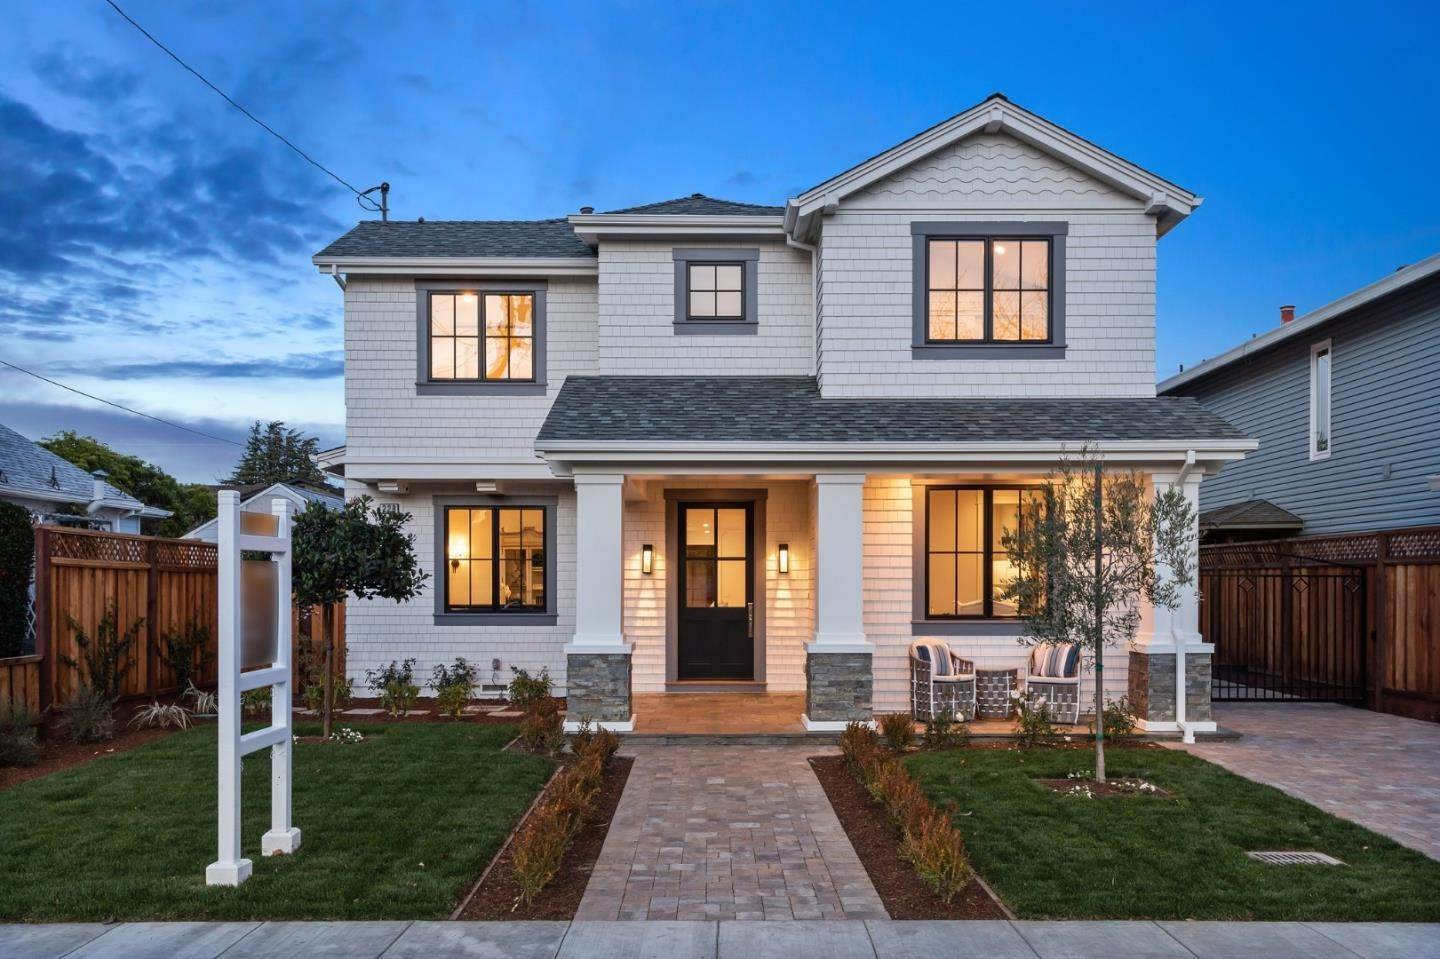 Residential for Sale at 228 Stanley Road Burlingame, California 94010 United States